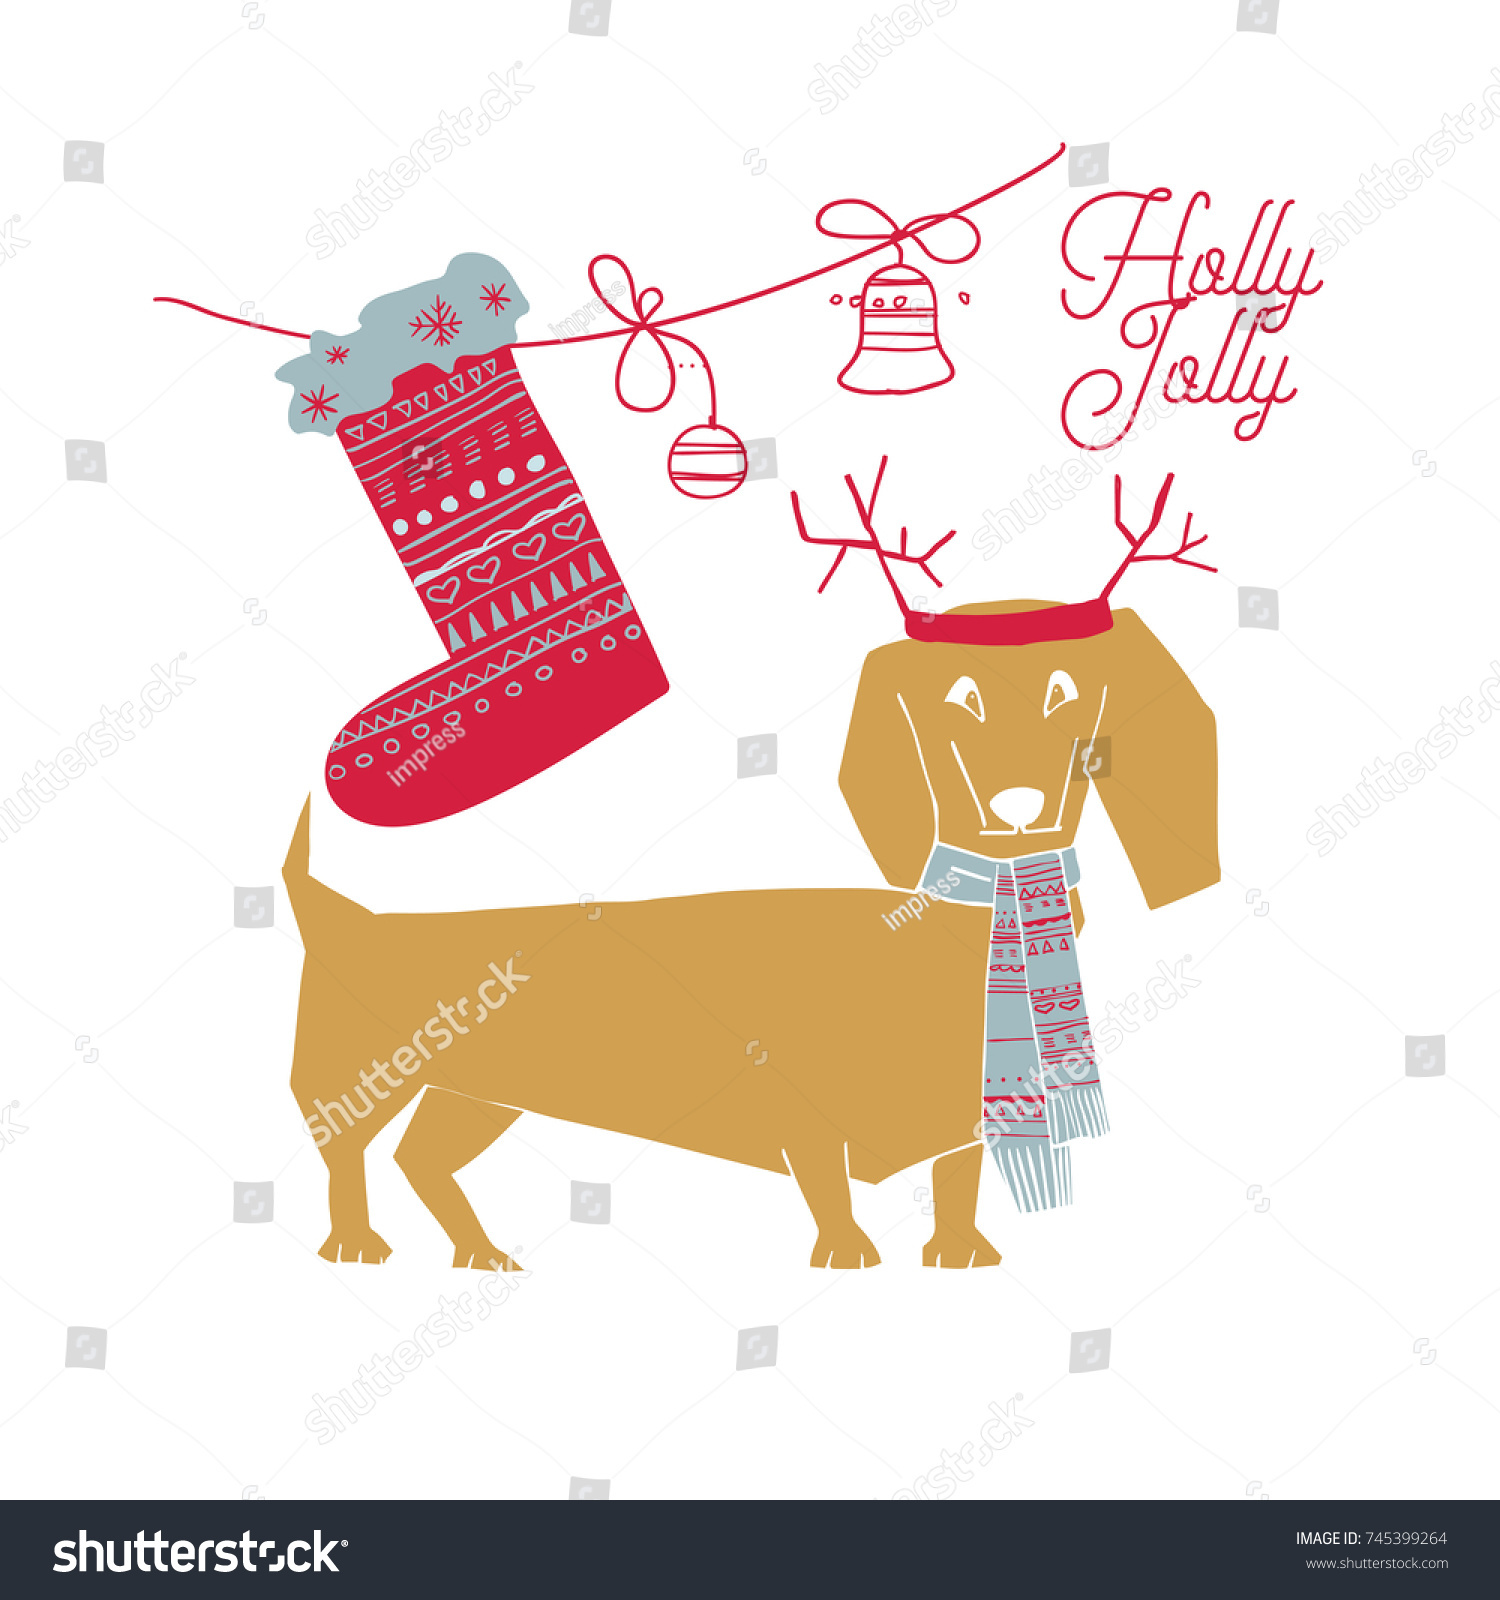 Vector illustration merry christmas greeting card stock vector vector illustration of merry christmas greeting card with dog in santa hat and quoteandinavian kristyandbryce Image collections